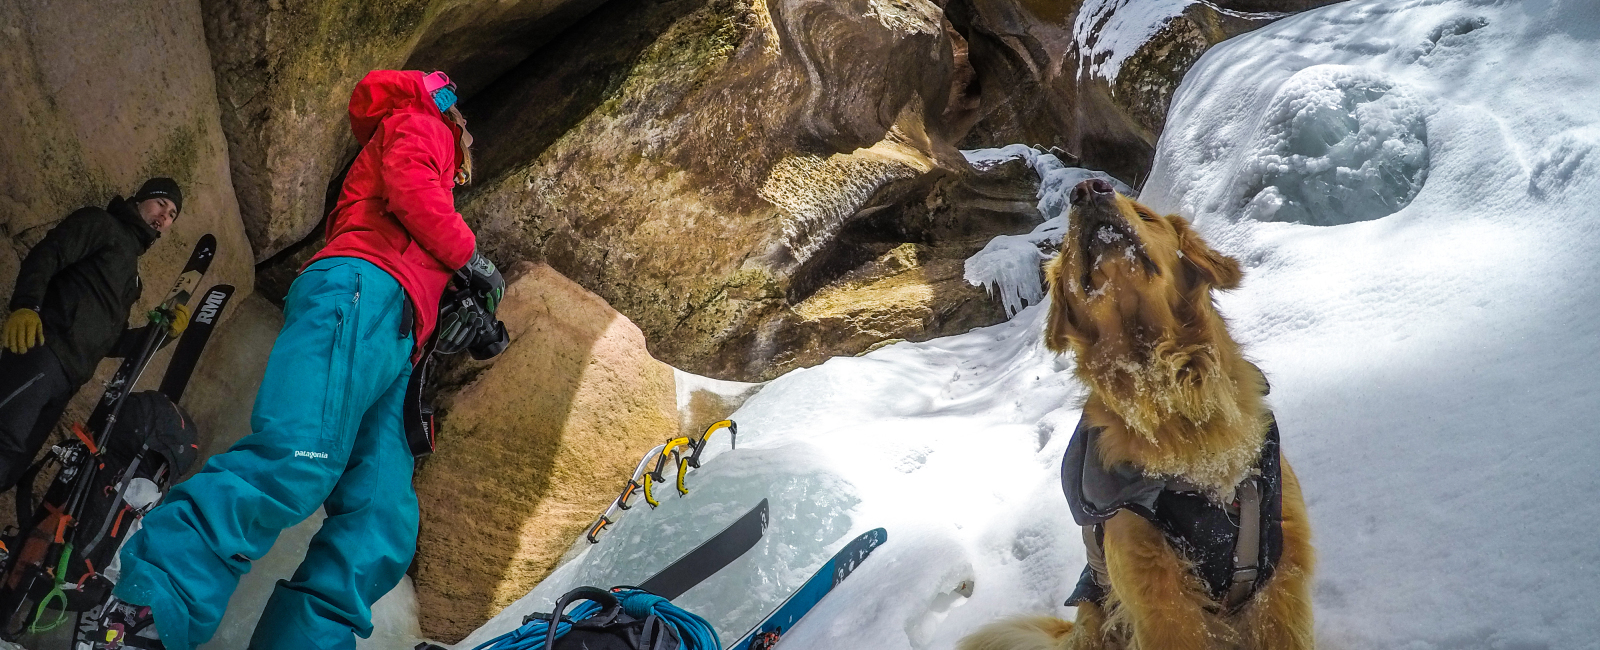 Ice Climbing Through A Utah Slot Canyon With Kicker Dog